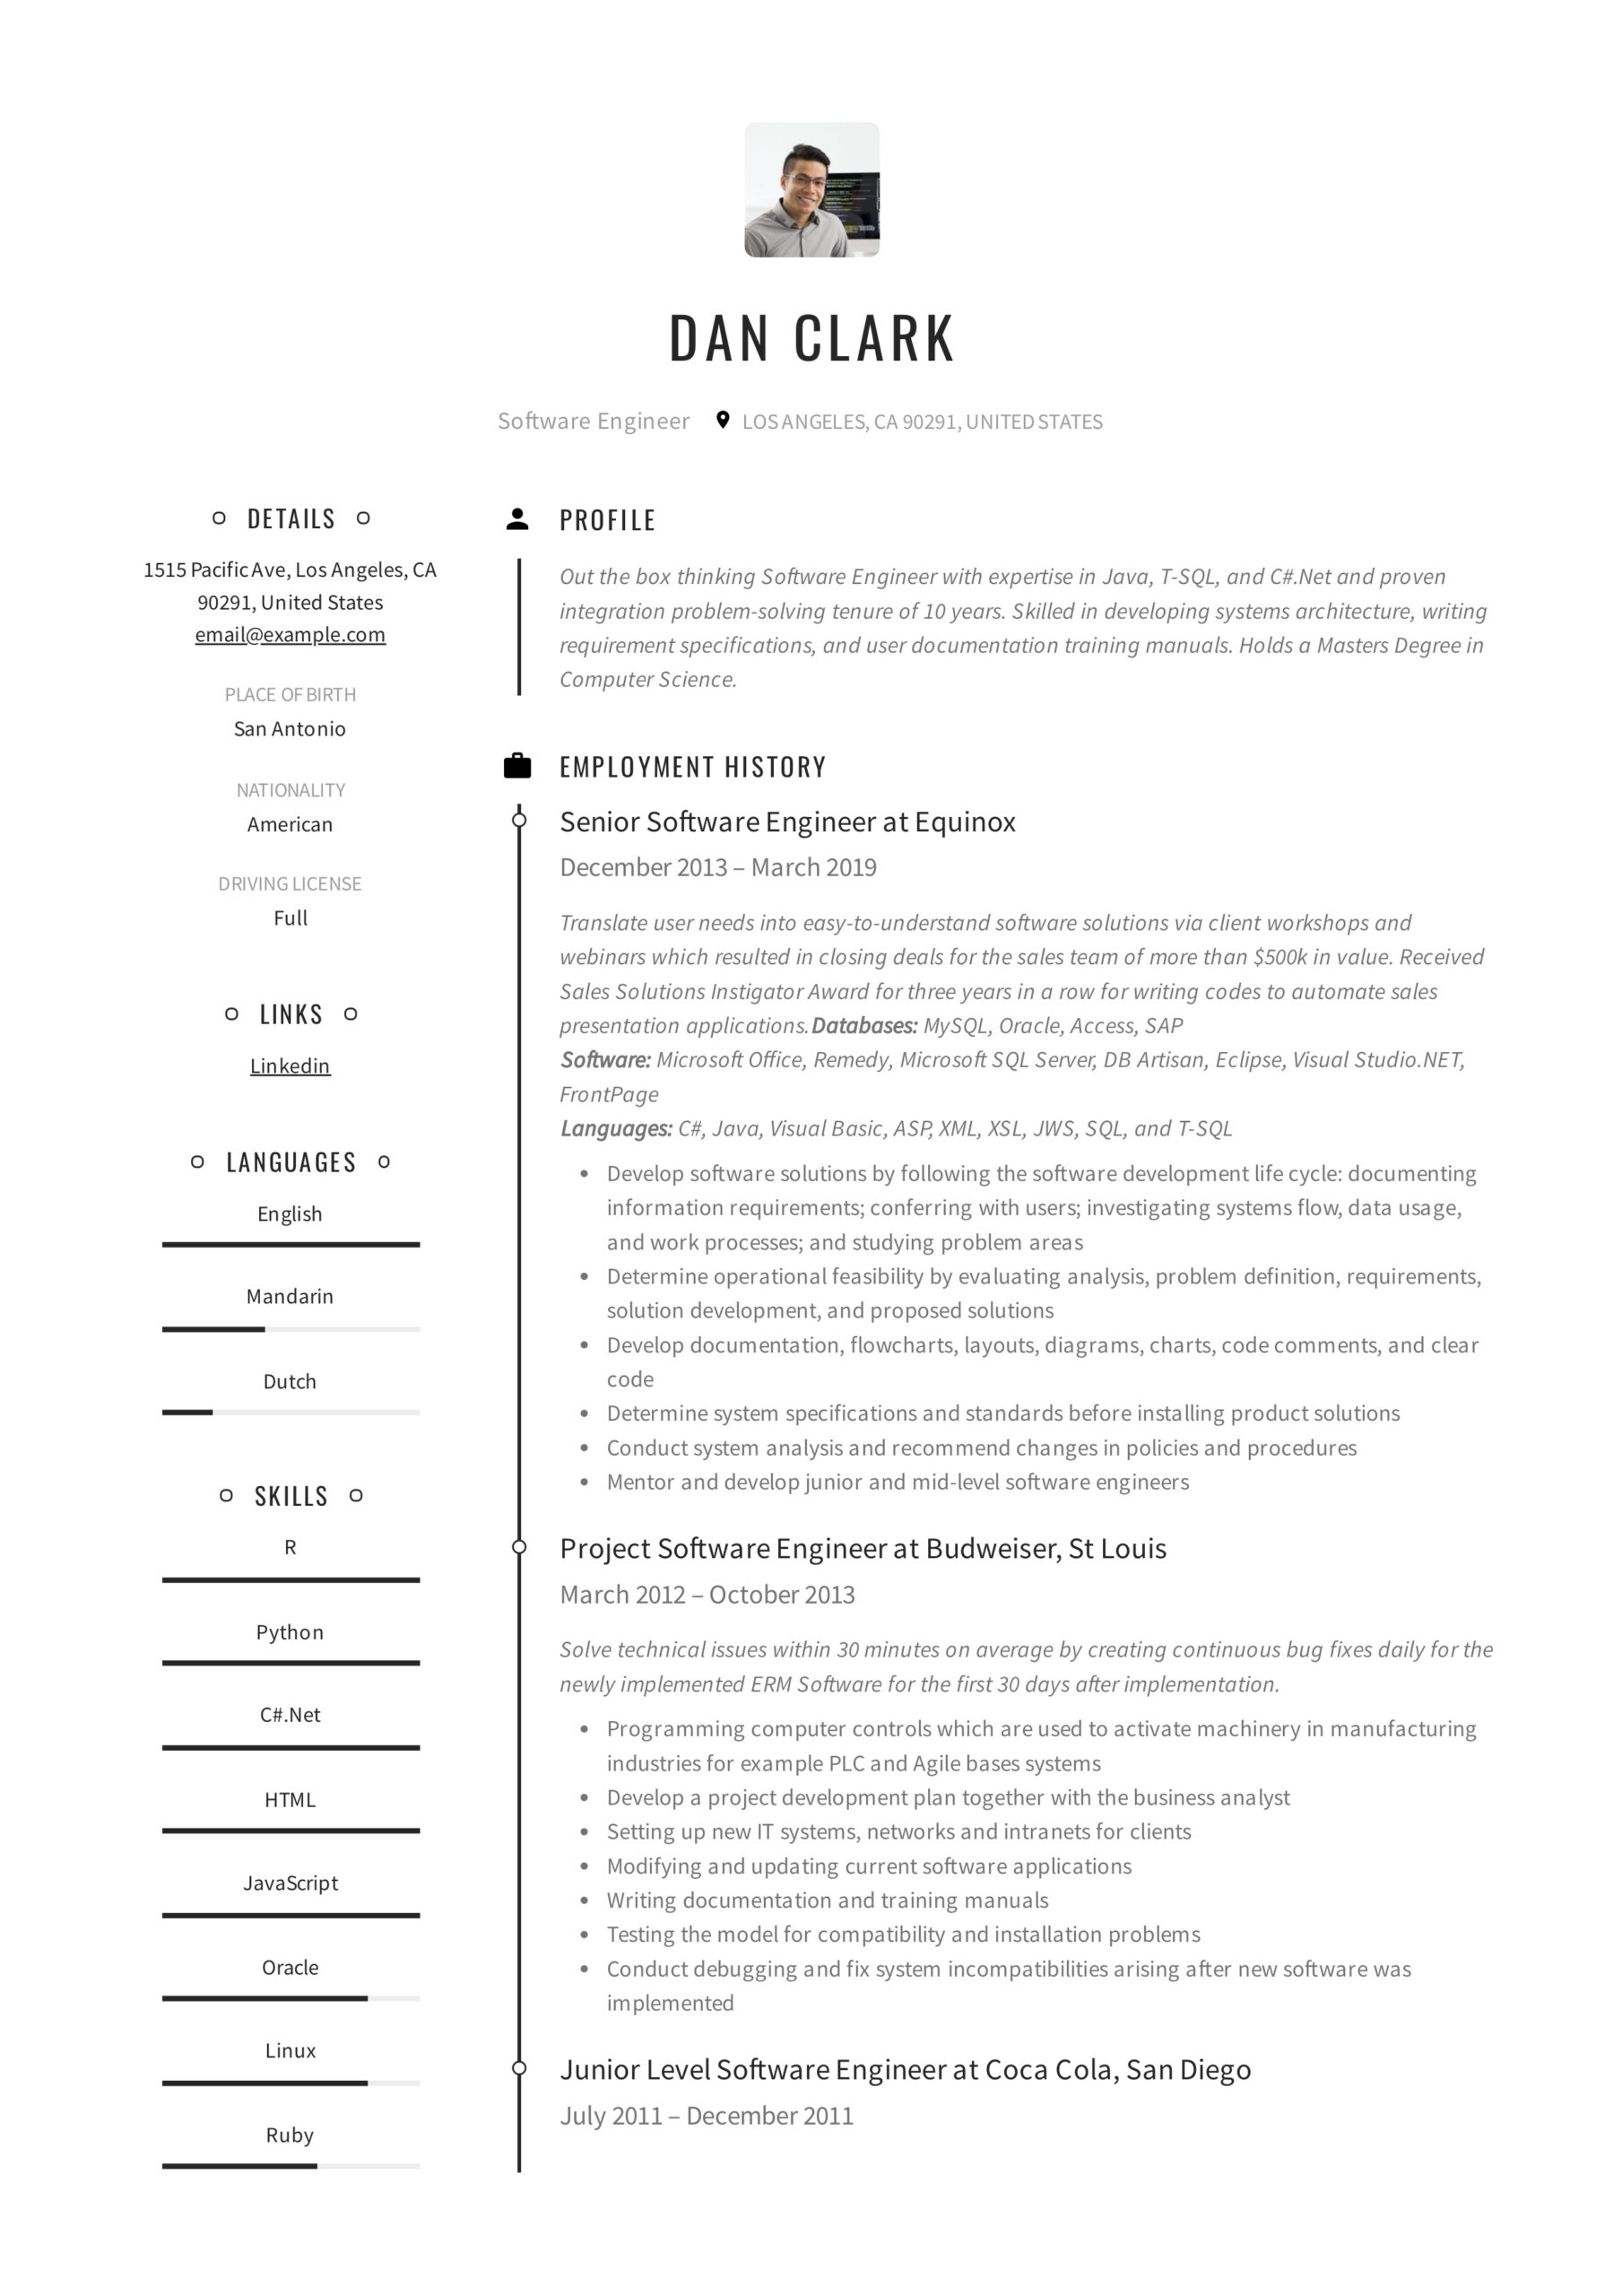 resume templates pdf word free downloads and guides format or dan software engineer Resume Resume Format Pdf Or Word